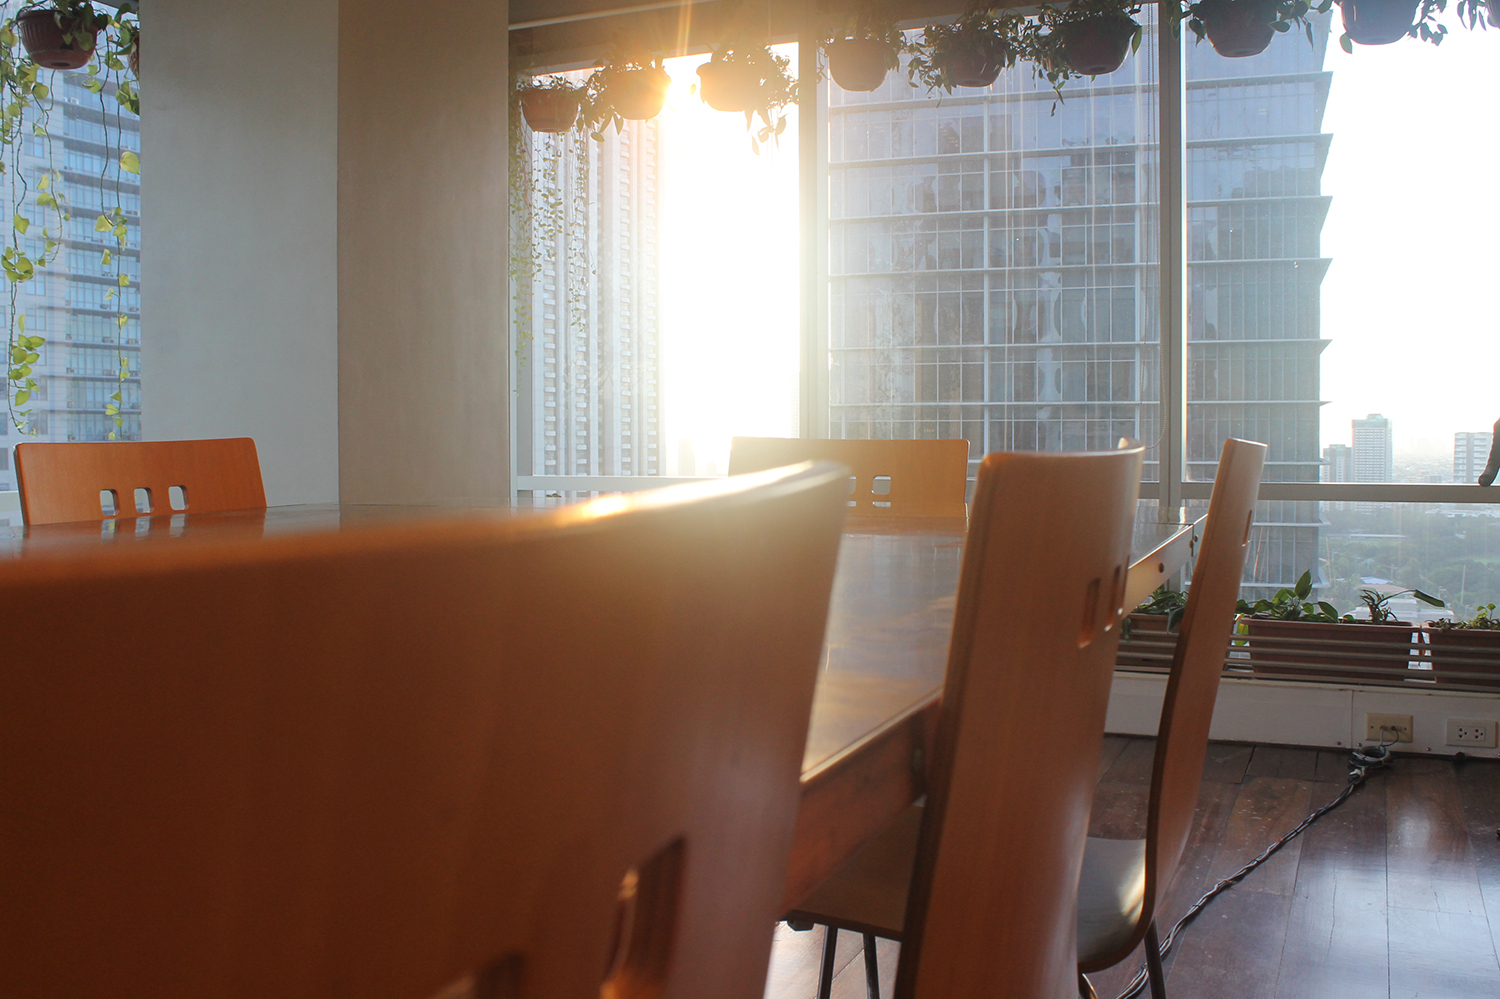 A Clean and Well-Lighted Place for Work, Manila